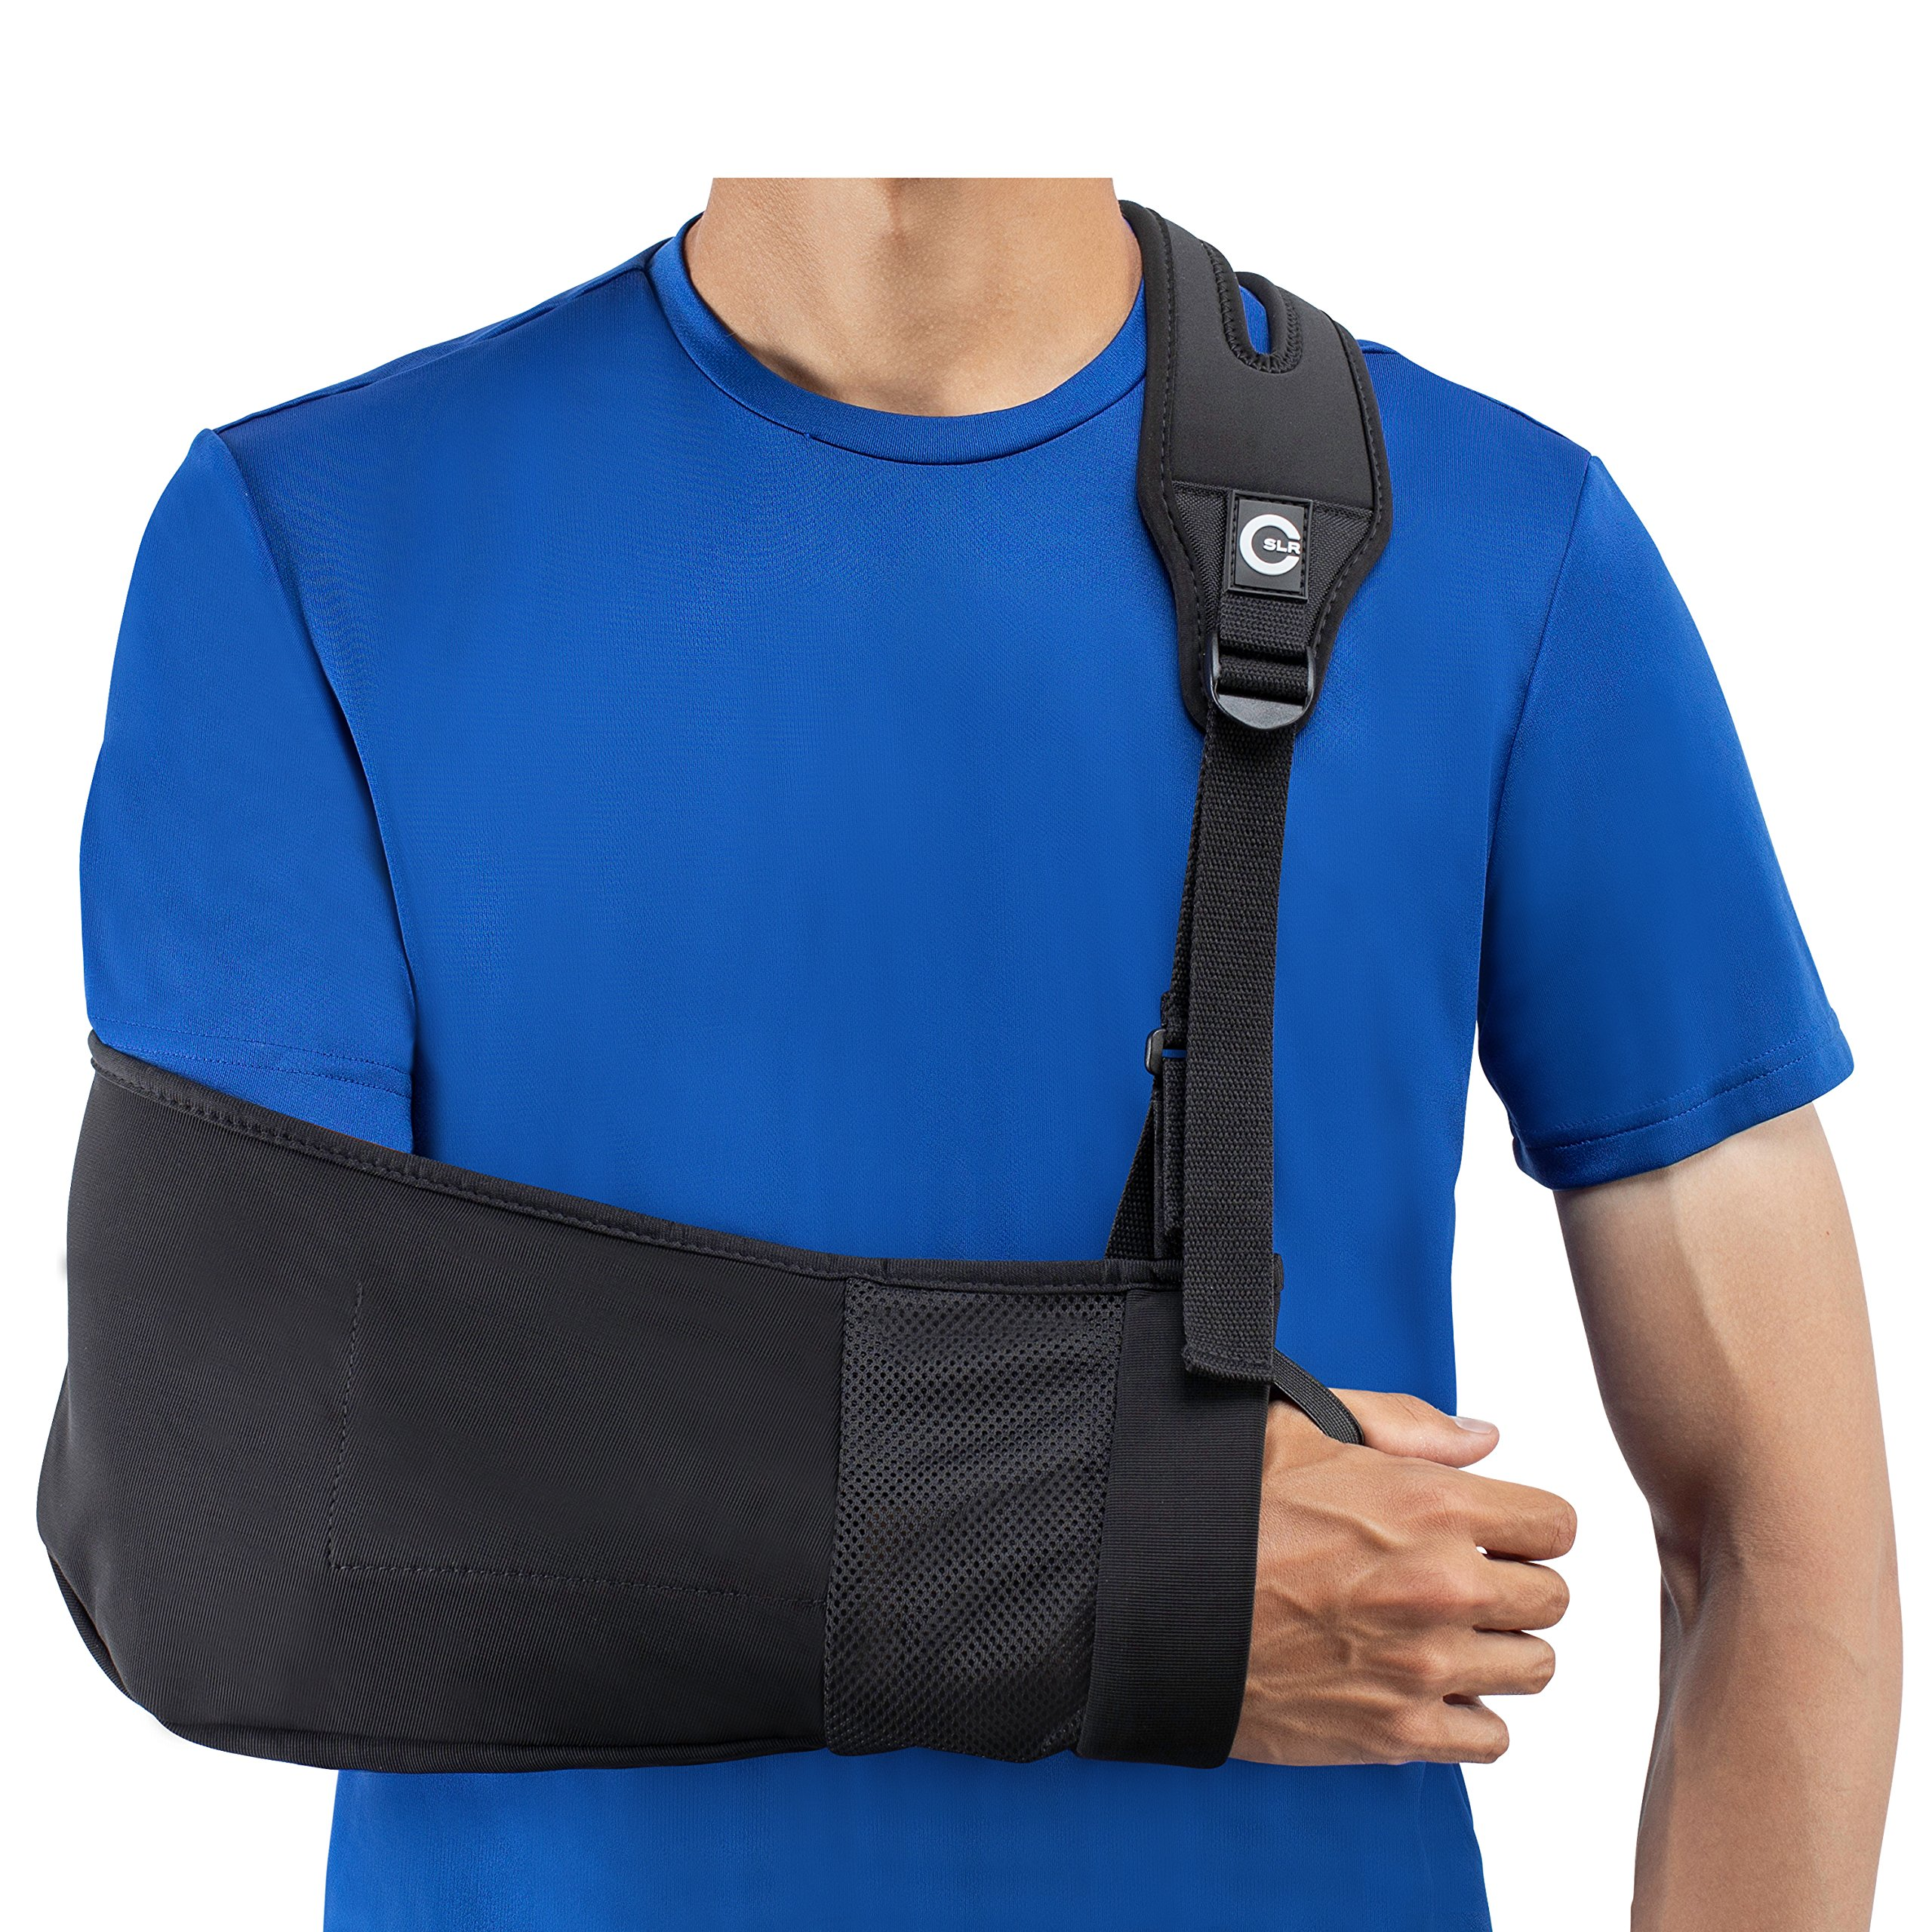 Medical Arm Sling with Split Strap Technology, Maximum Comfort, Ergonomic Design By Custom SLR by Custom SLR